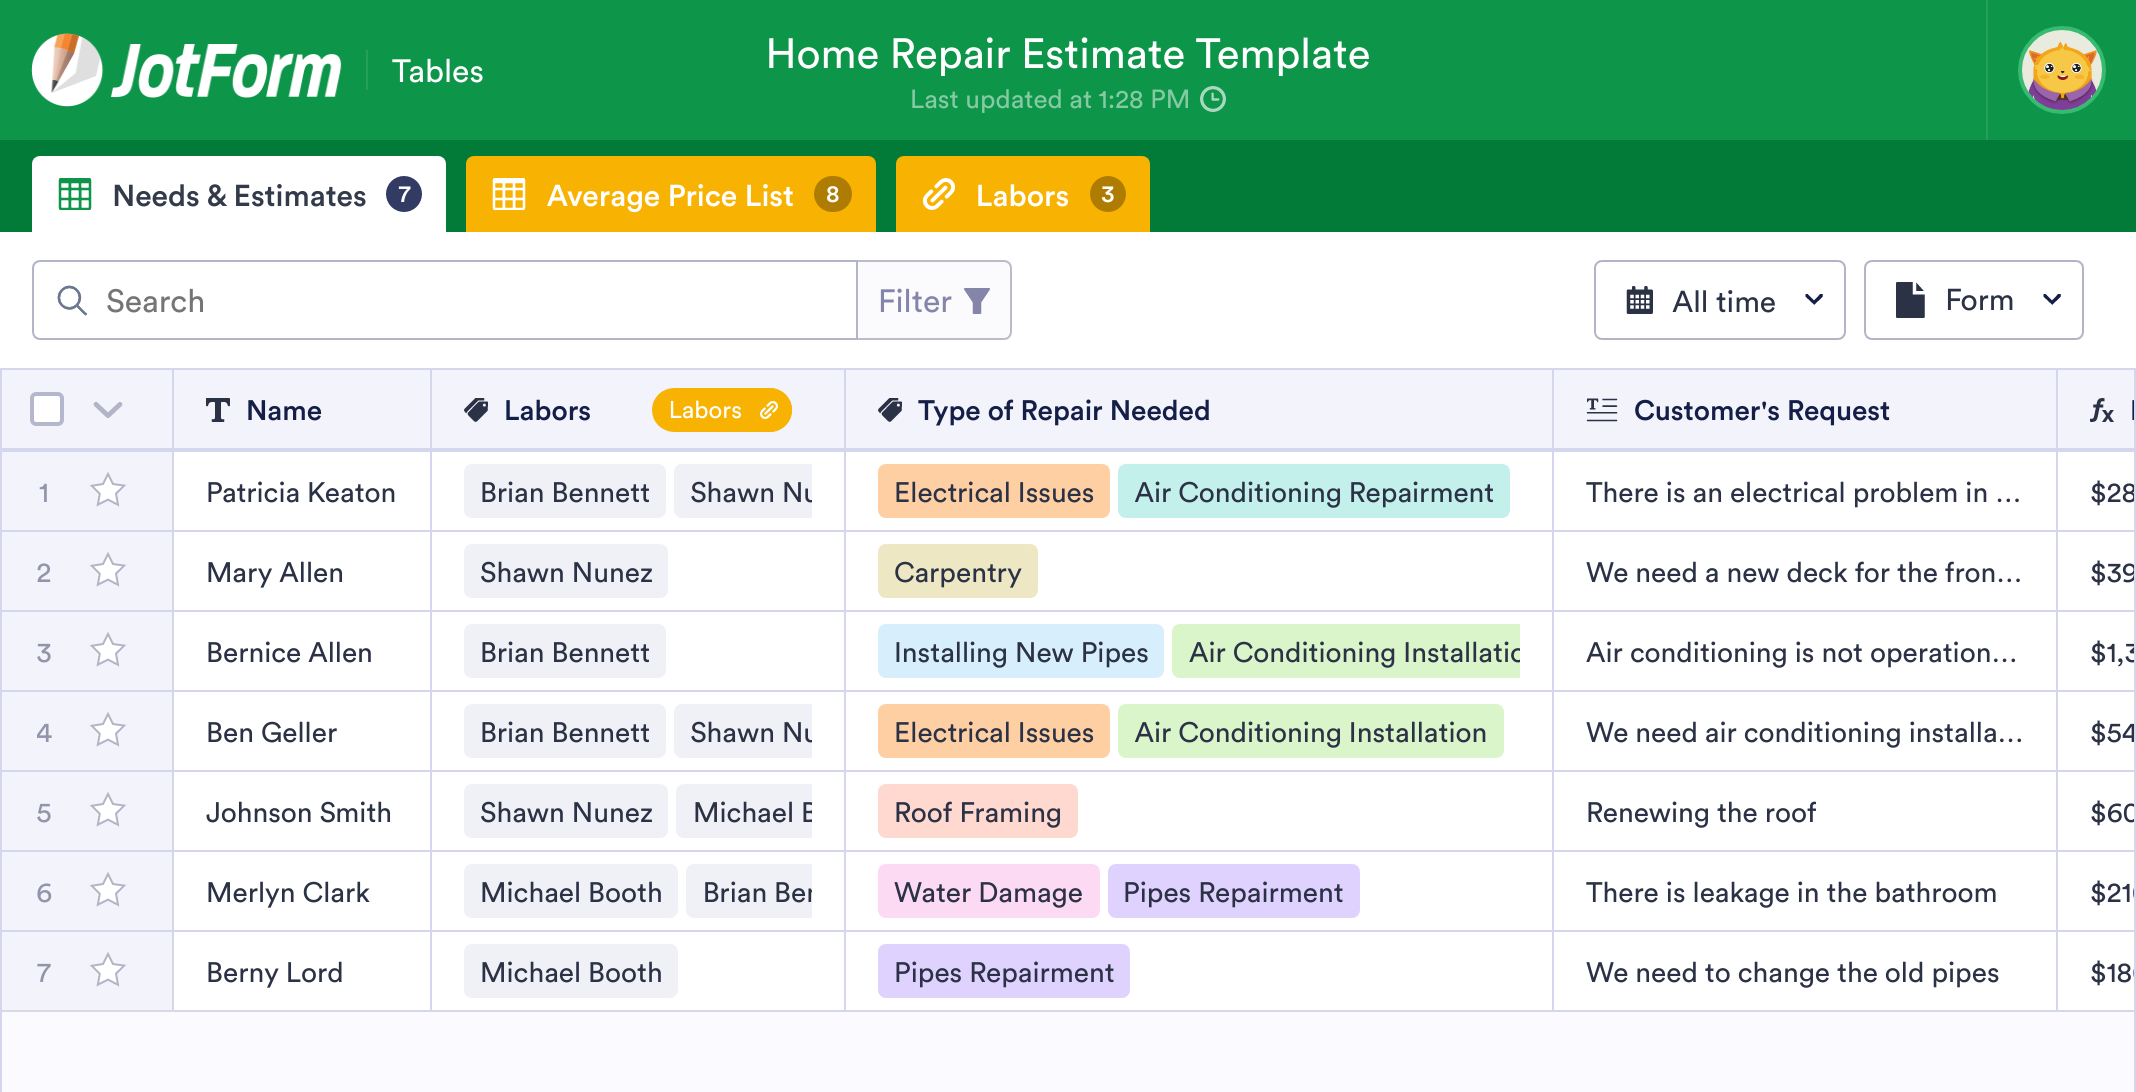 Home Repair Estimate Template